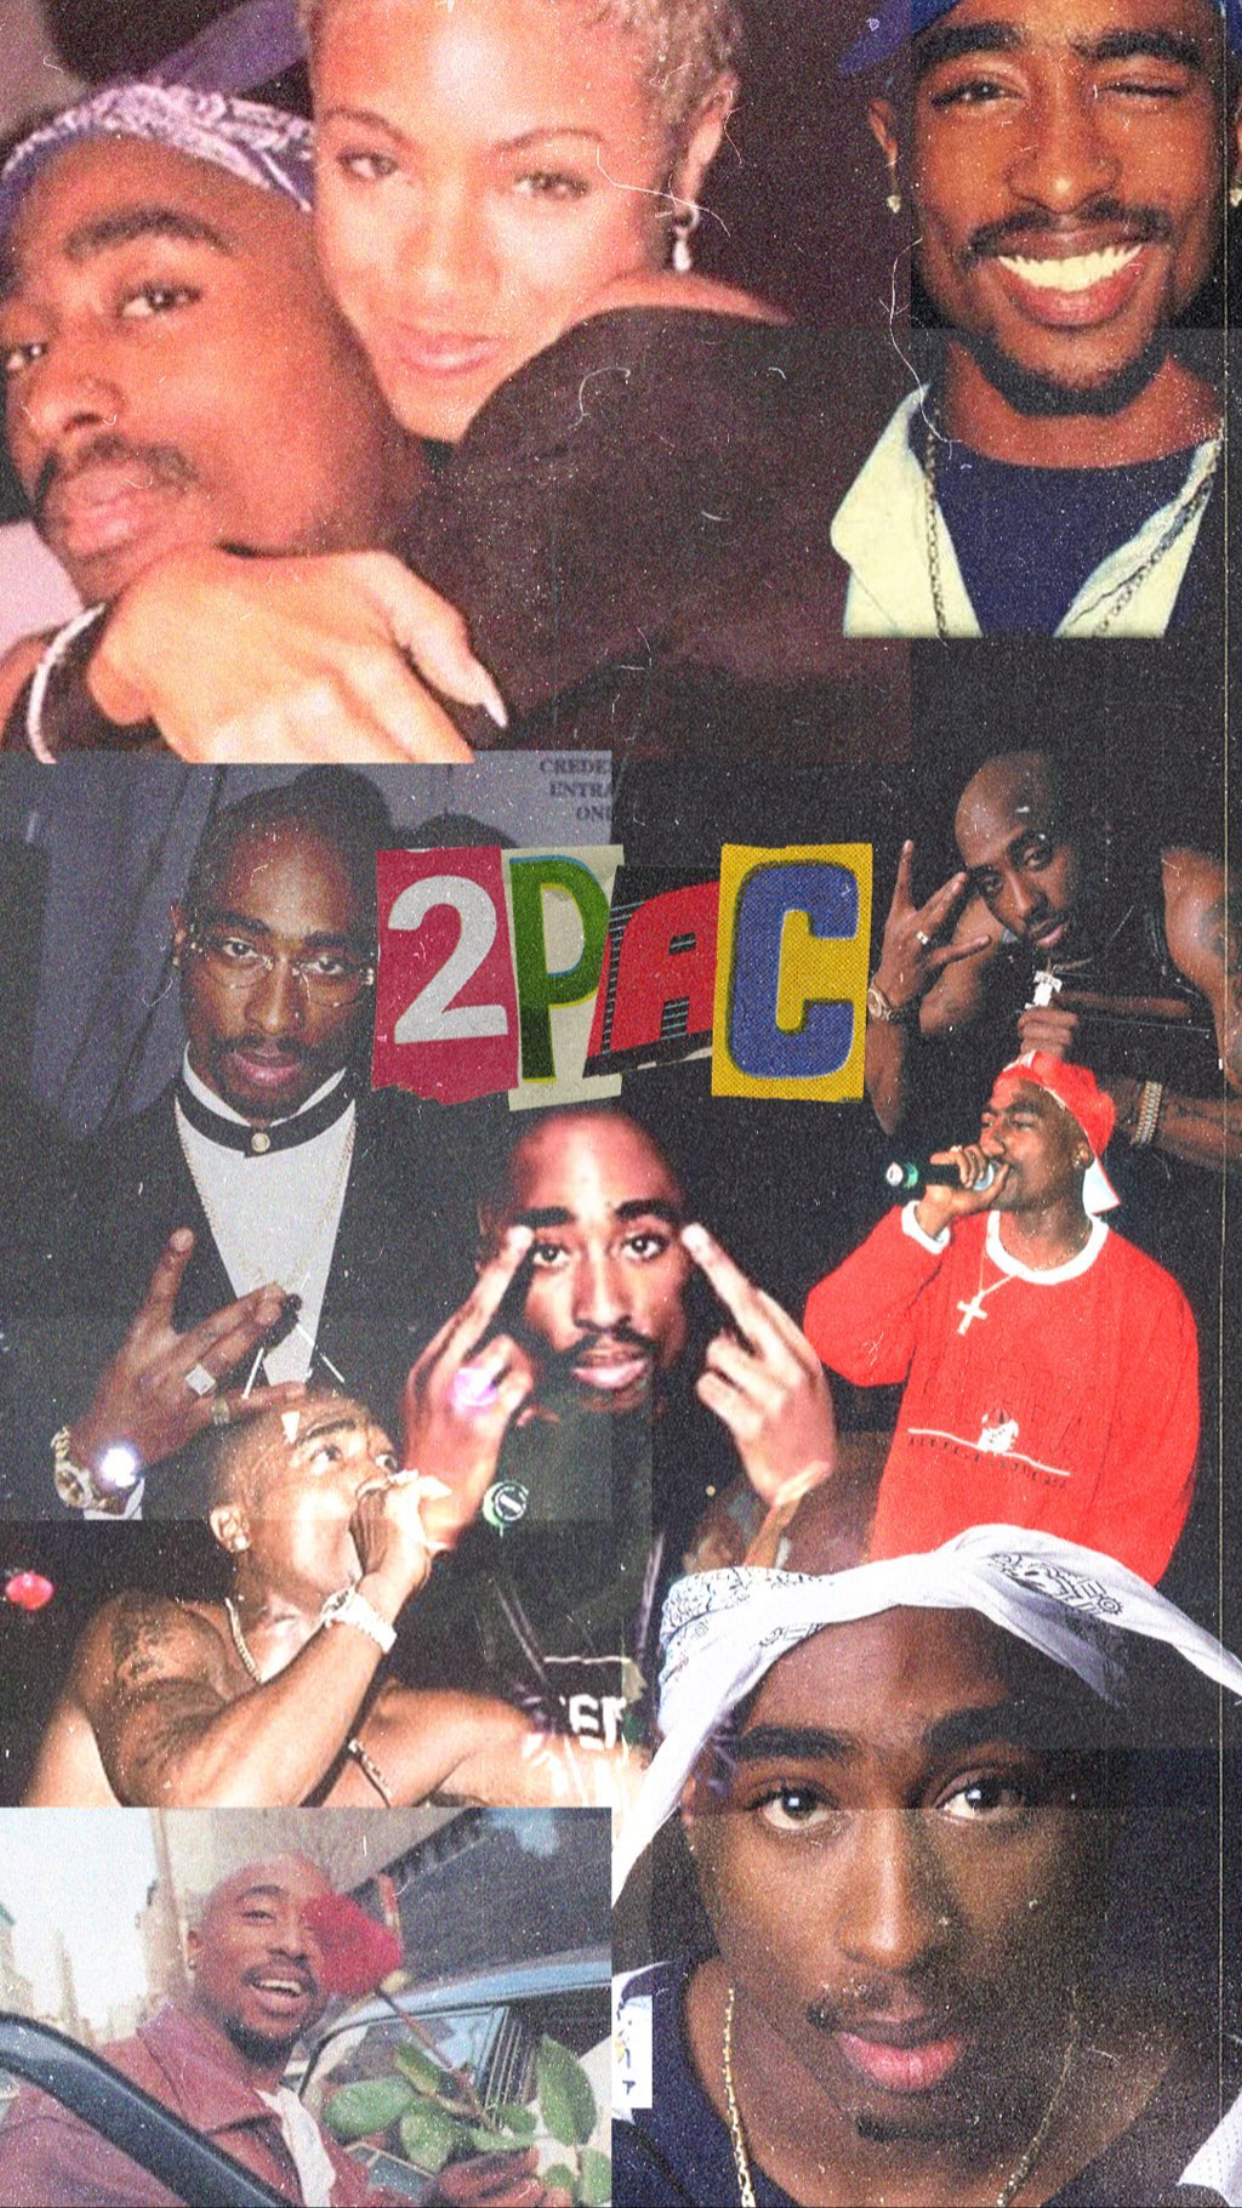 Pin By Brianna On Wallpapers In 2020 Tupac Wallpaper 2pac